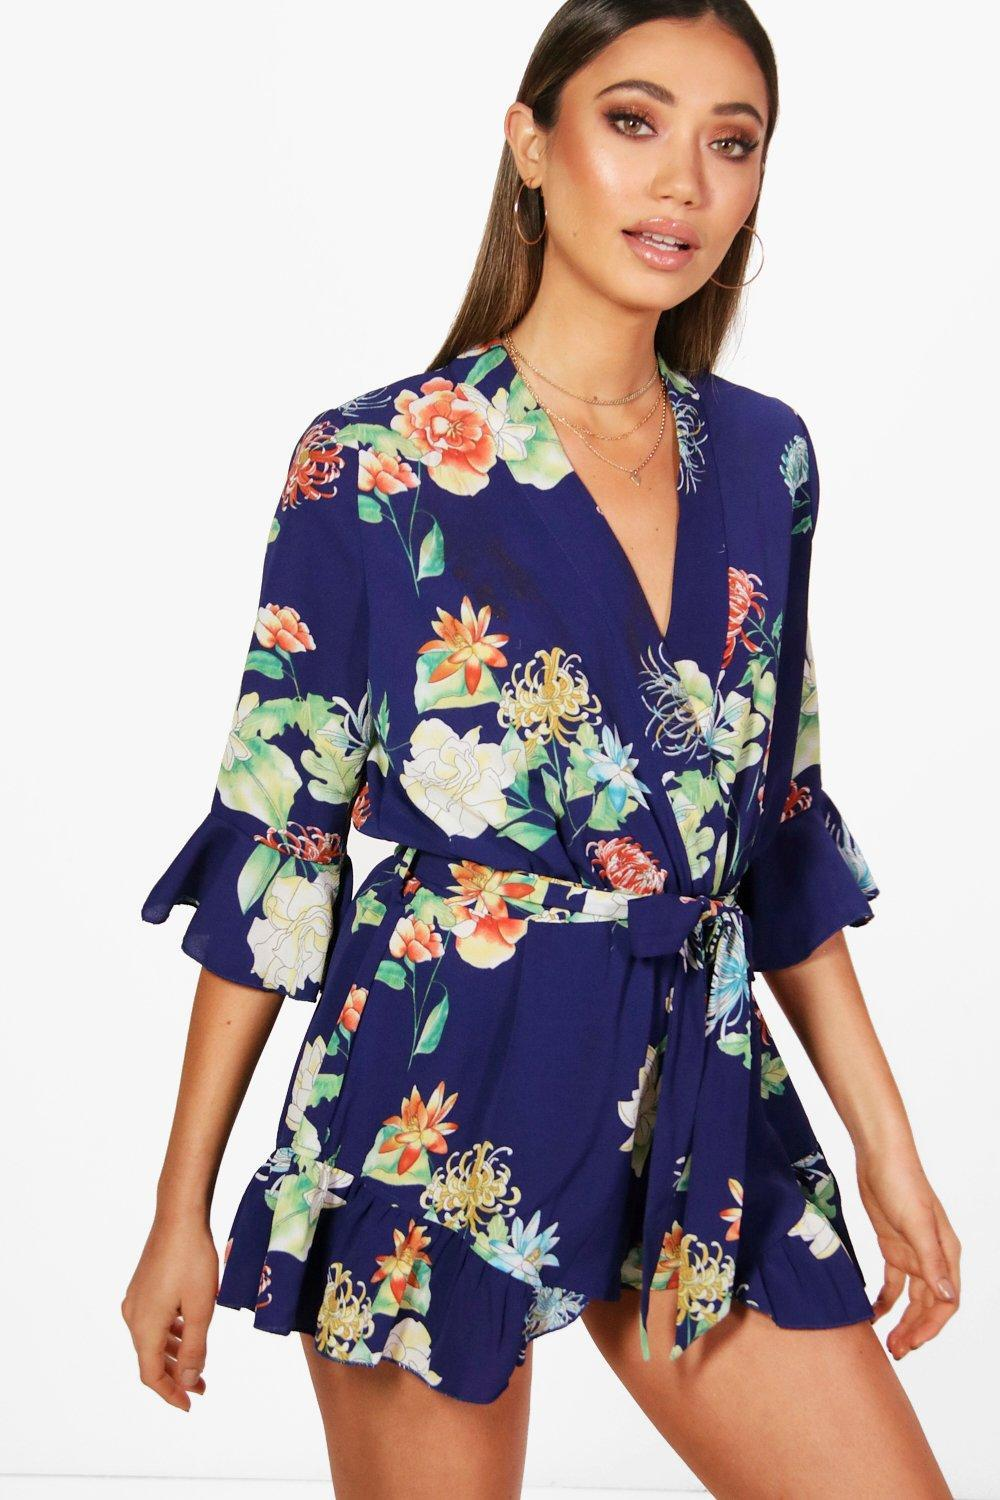 e123ca7a5a Boohoo Floral Kimono Style Playsuit in Blue - Lyst